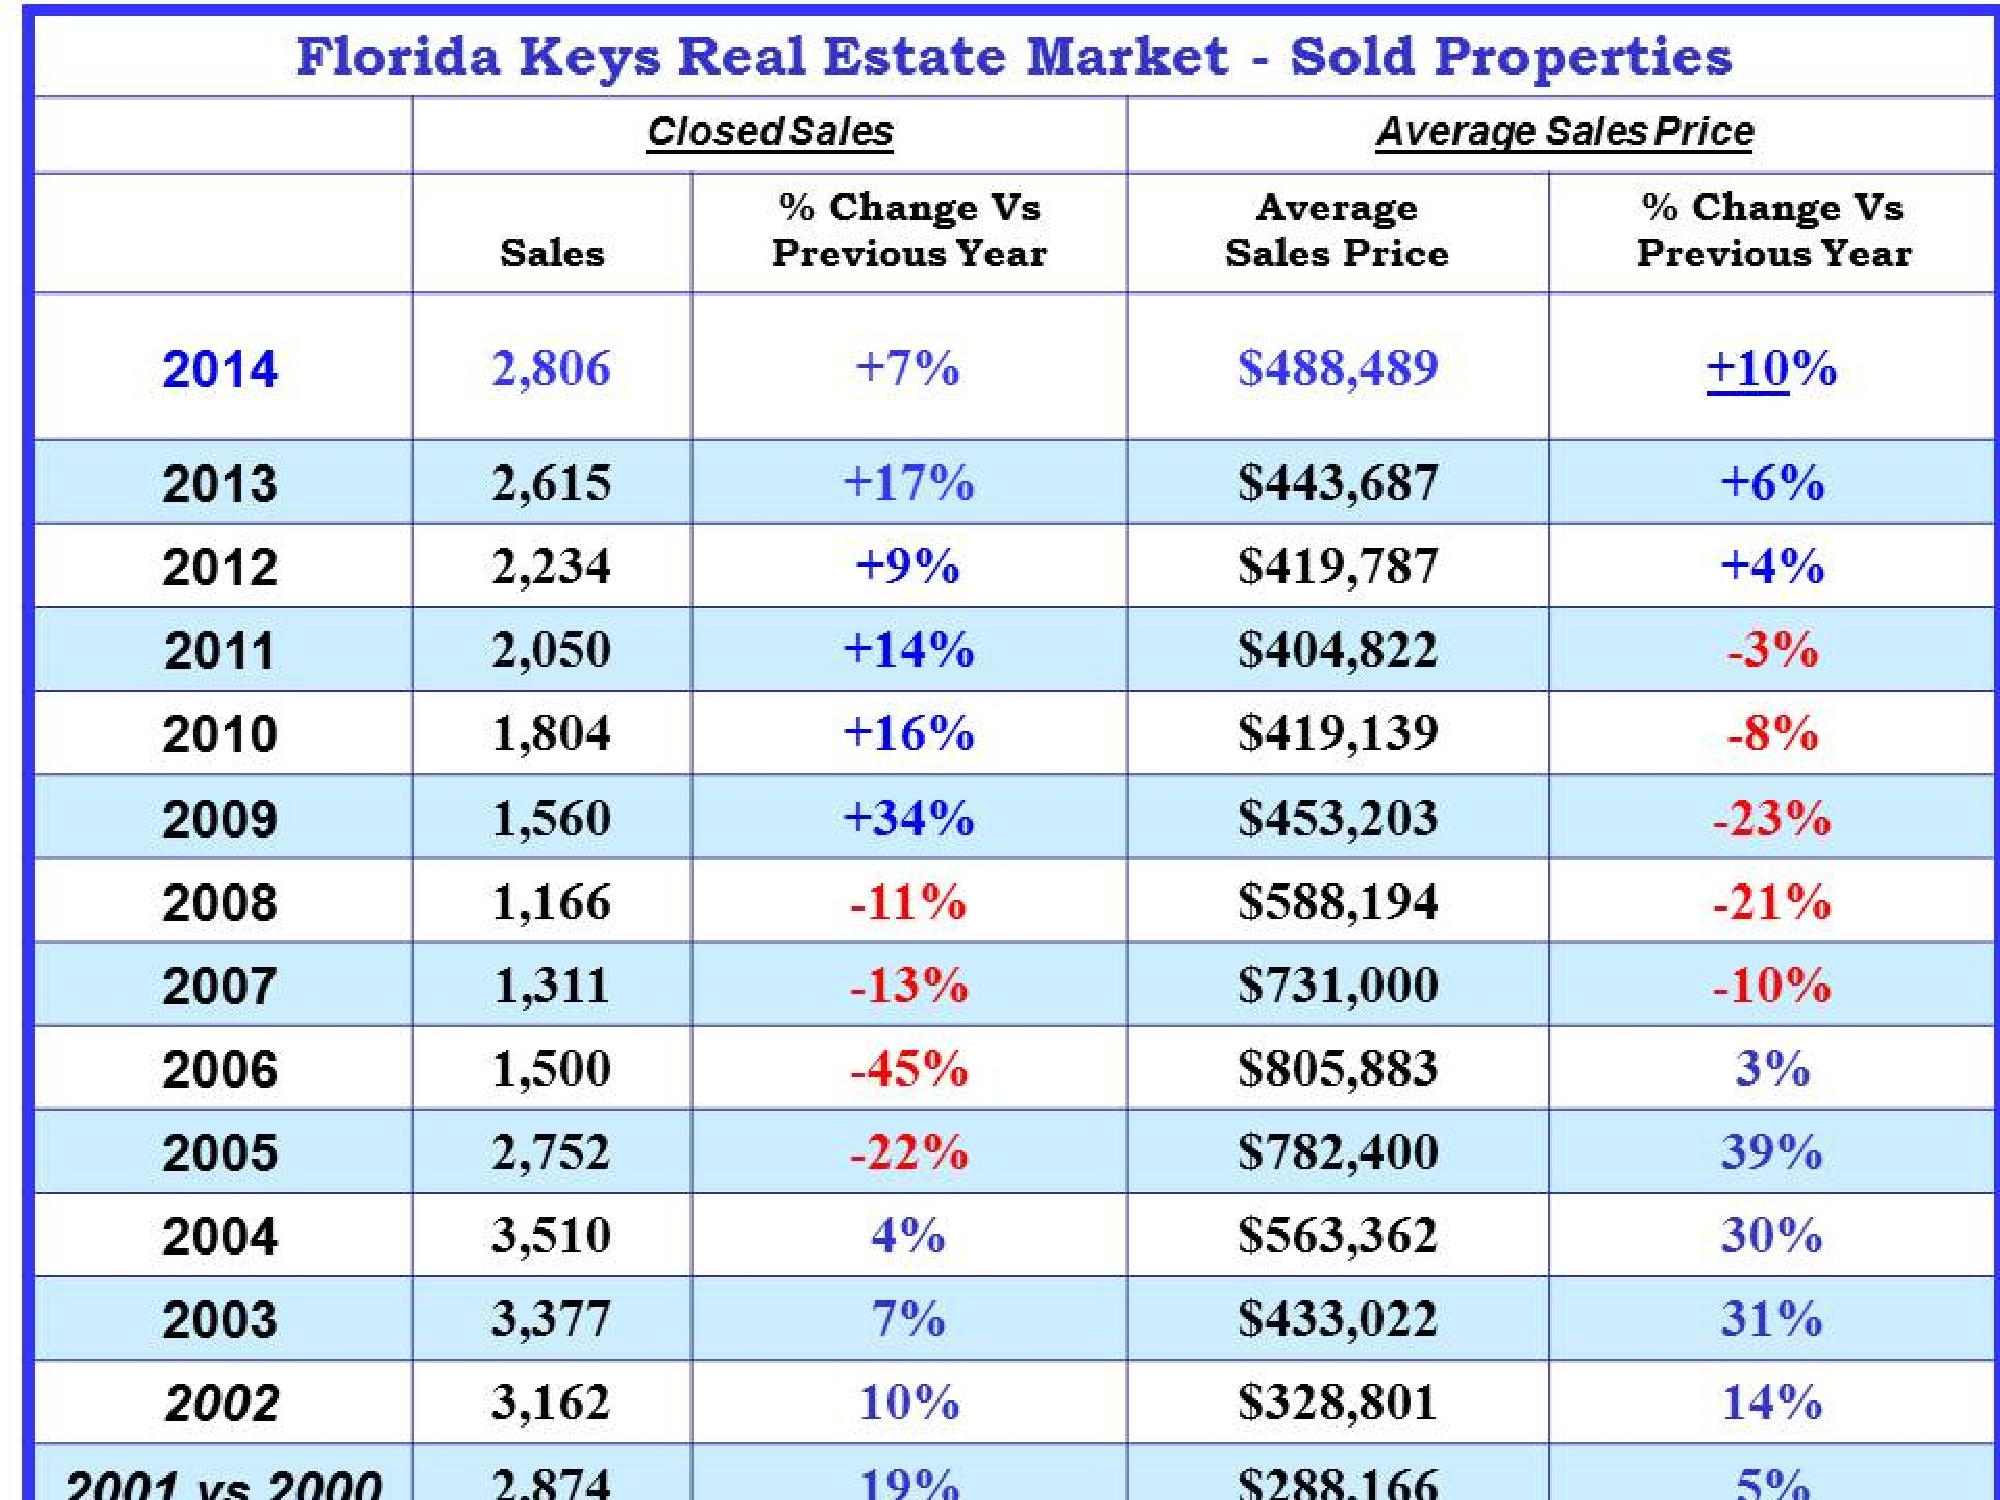 Florida Keys Real Esate Market Report 2014